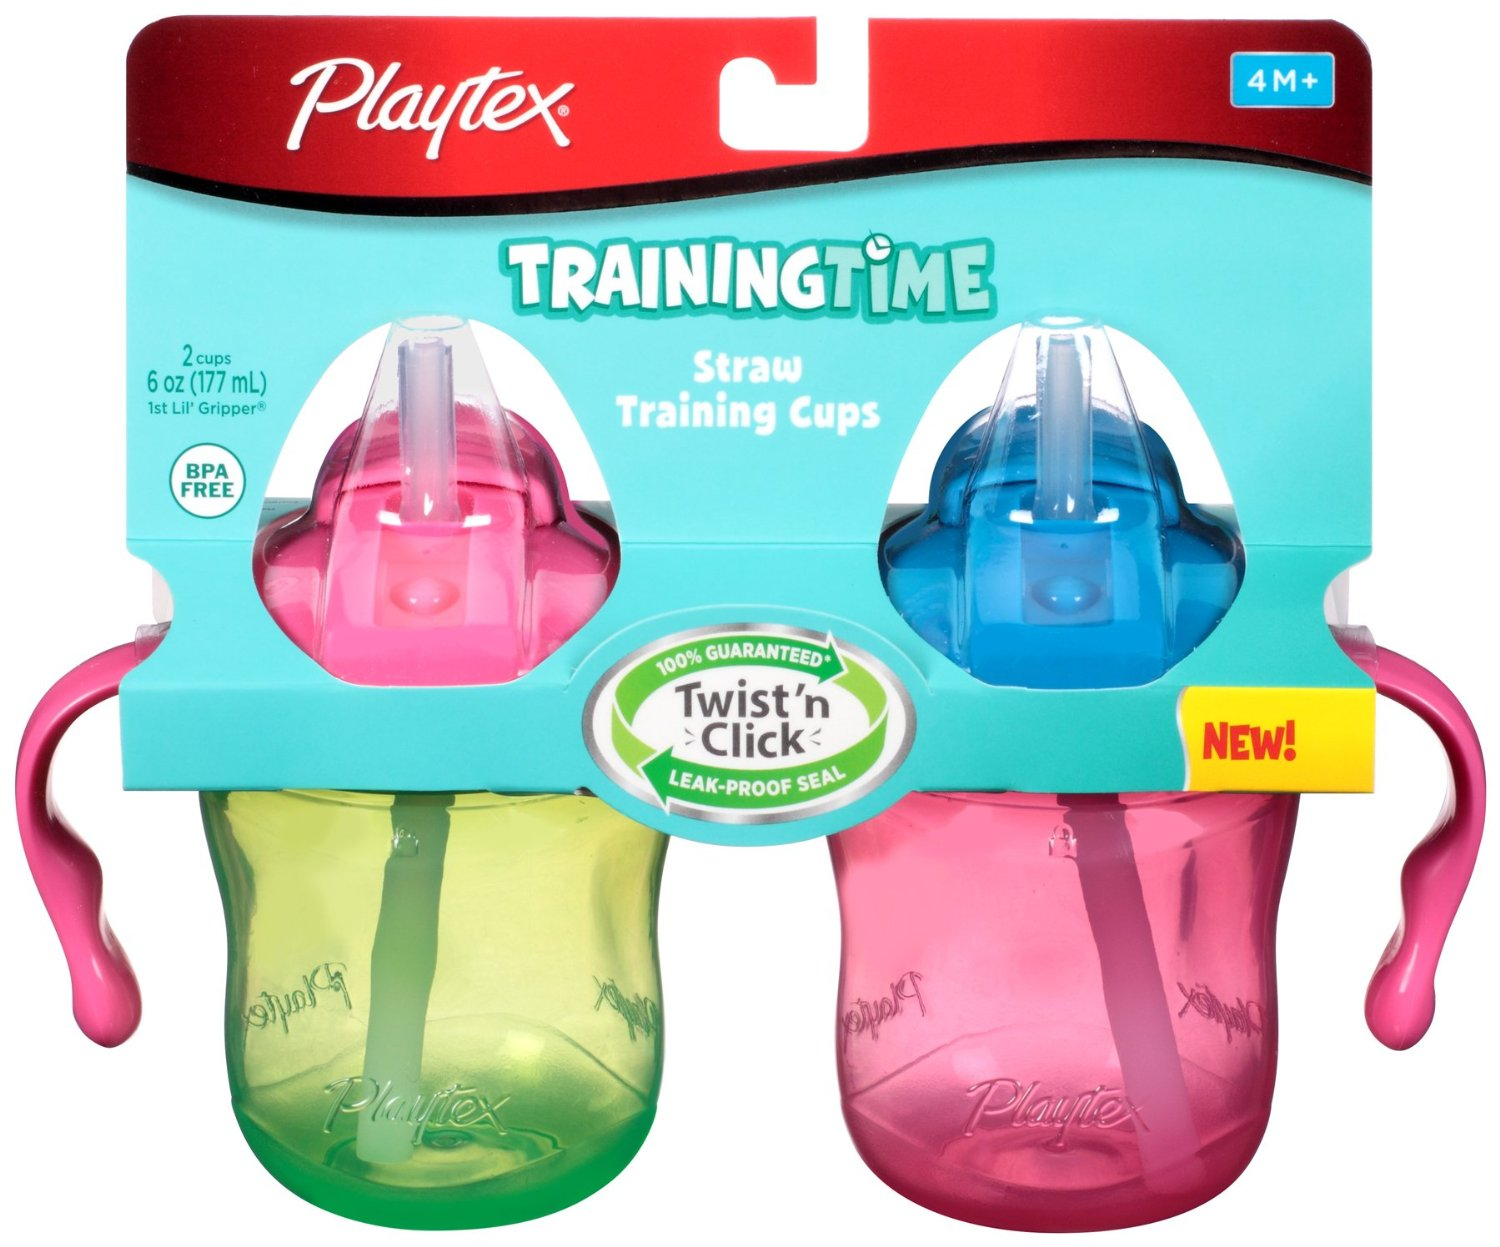 4 Pack Playtex Training Time Straw Cups, 6 Ounce, 2 Count (Colors may vary) Each by Playtex